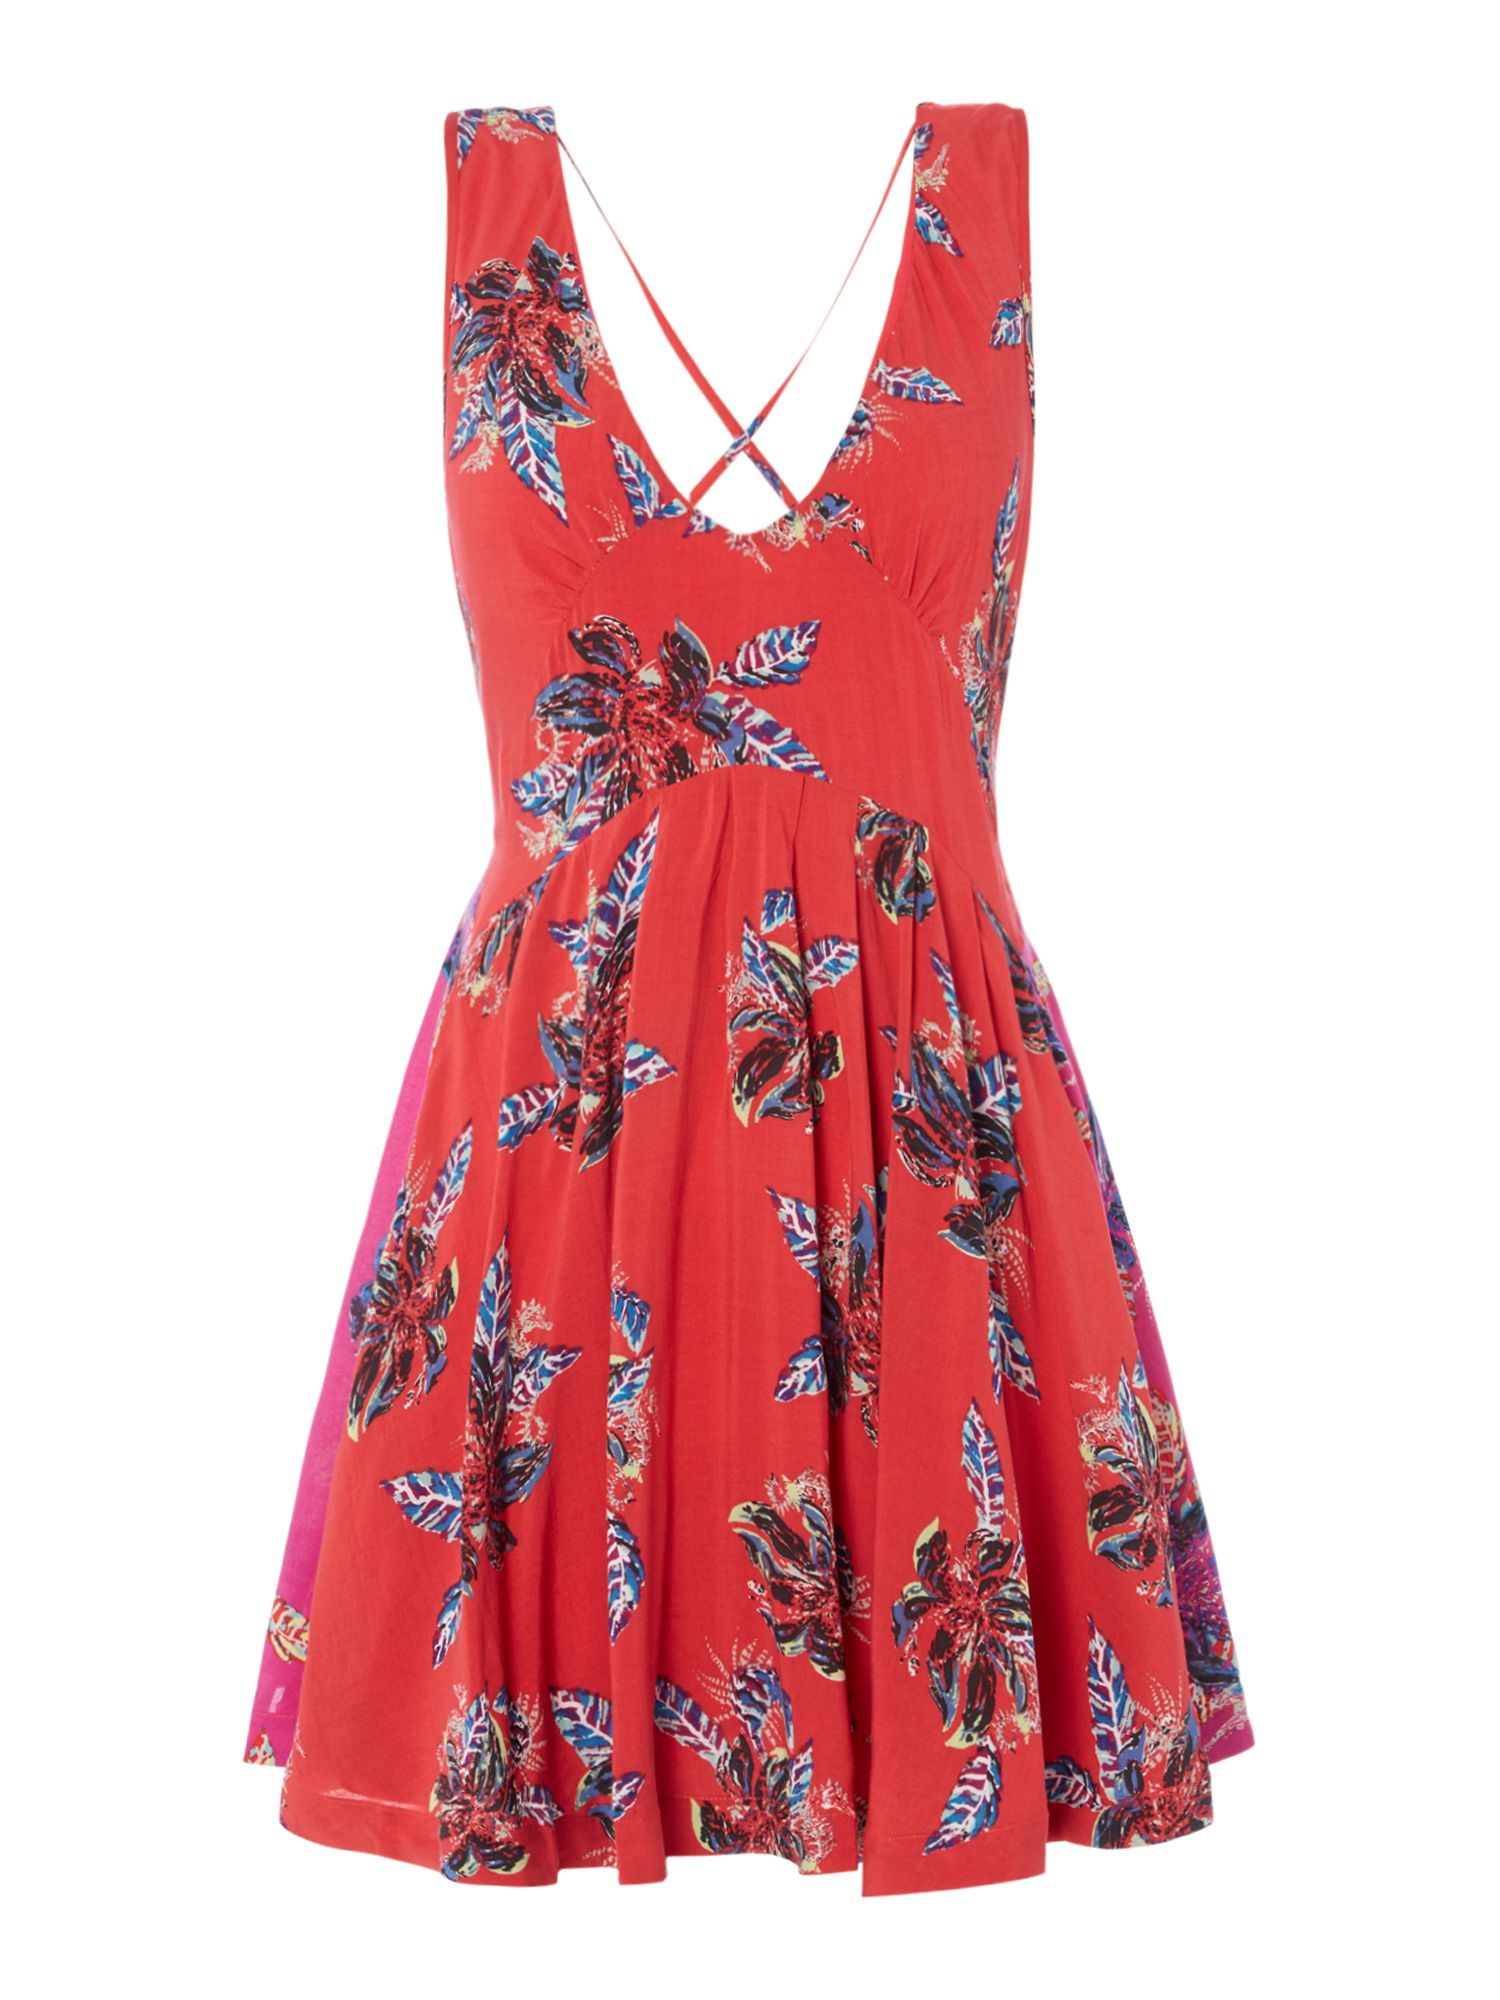 Free People Floral Print Floaty Dress With Contrast Panel, Red